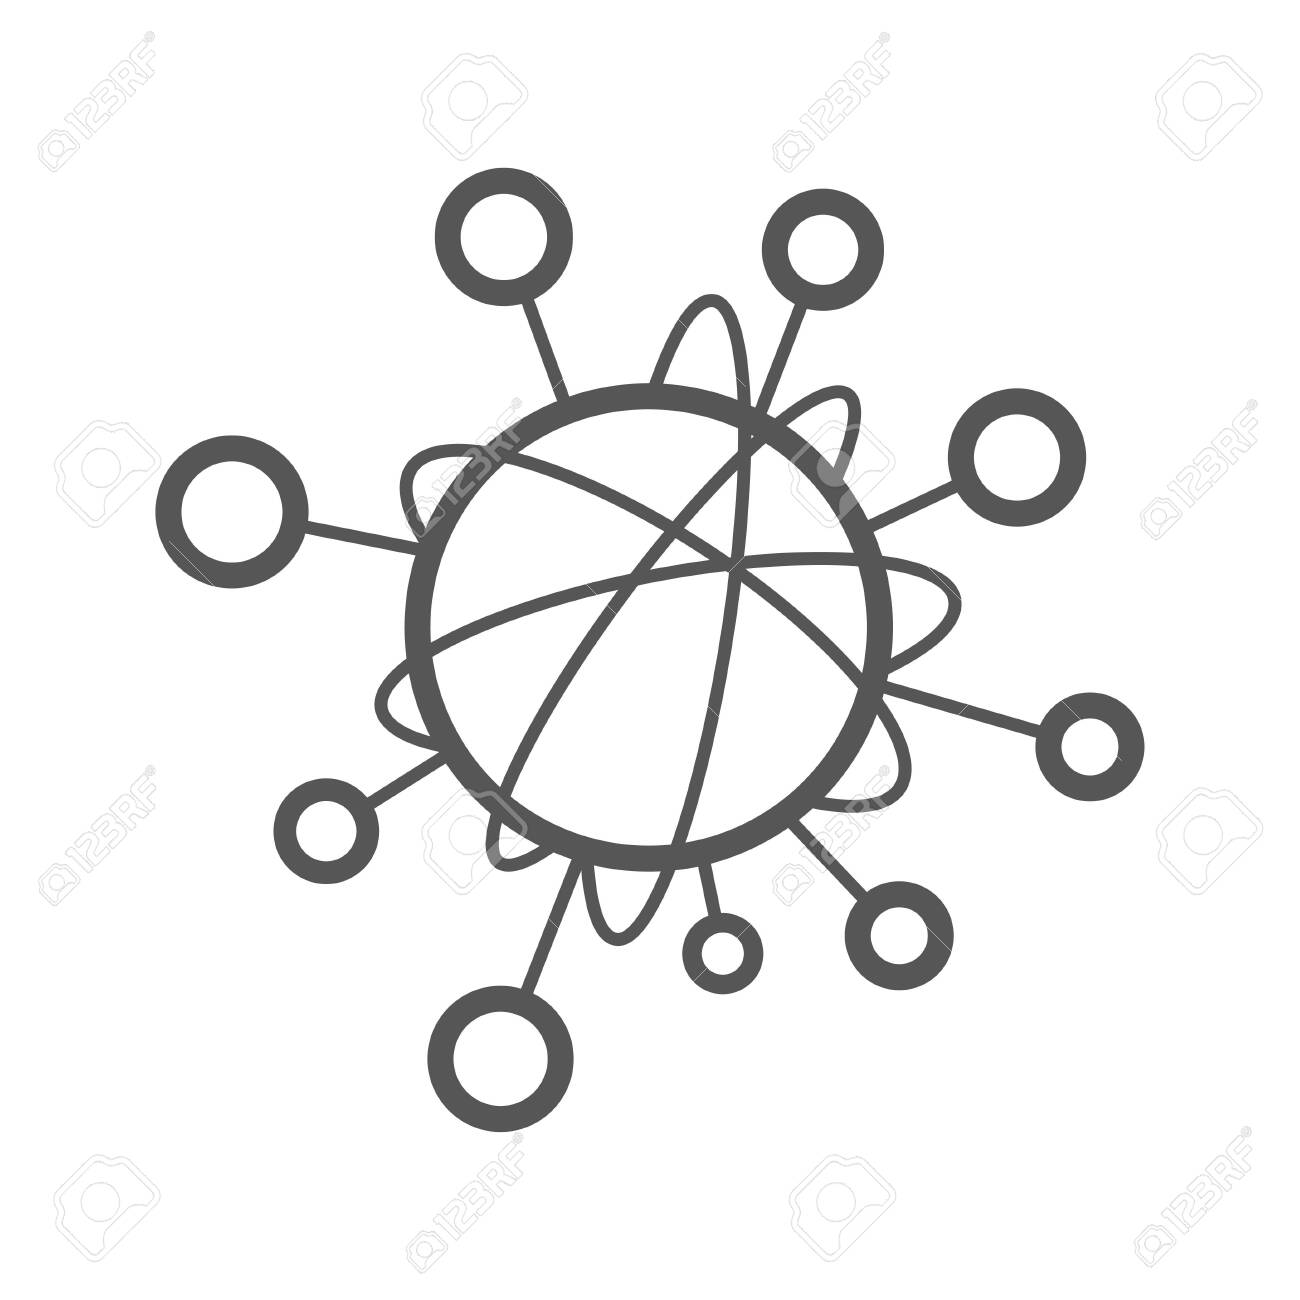 Simple line icon to represent the Internet of Things IoT concept. A network of objecs such as devices connected to each other on the internet. Editable Stroke. EPS 10. - 145850096